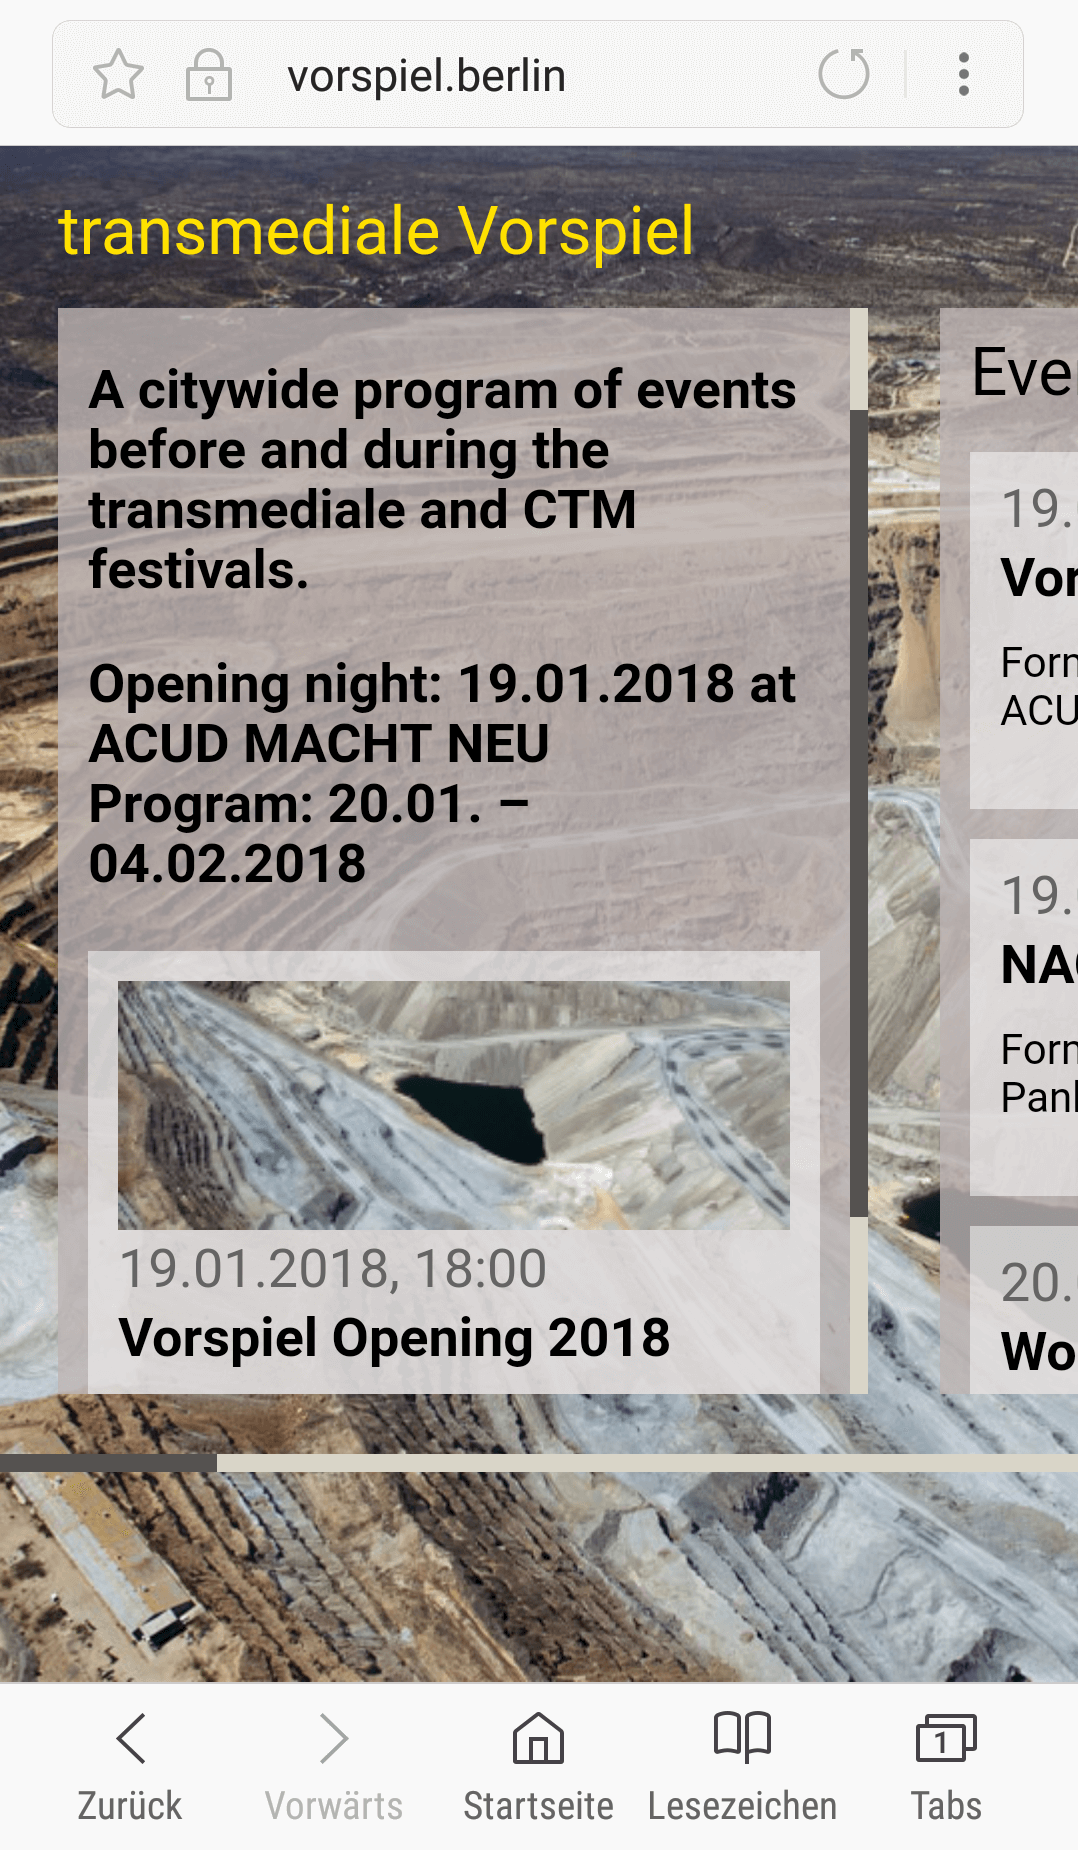 Vorspiel 2018 – A citywide program of events before and during the transmediale and CTM festivals.